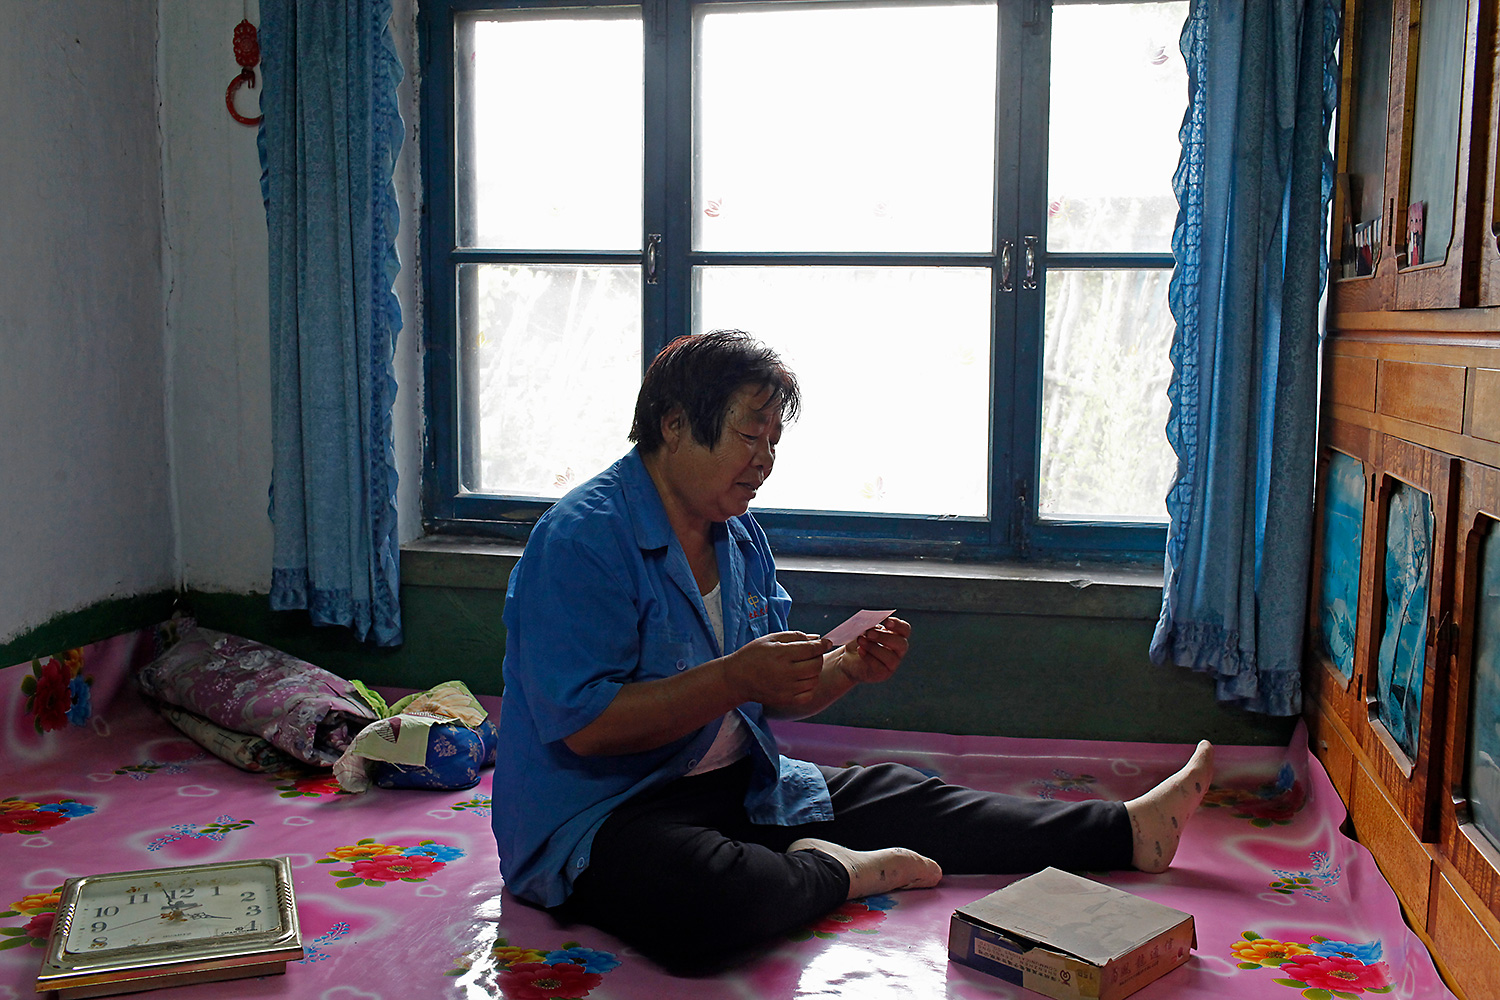 Before retiring, Tang Yuzhen was the factory's trade union chairwoman. She entered the factory as an ordinary worker at 16 and worked her way up to chairwoman, spending her entire youth in the factory. At 68, she is busy organizing her papers, and hopes to write a memoir about the match factory.